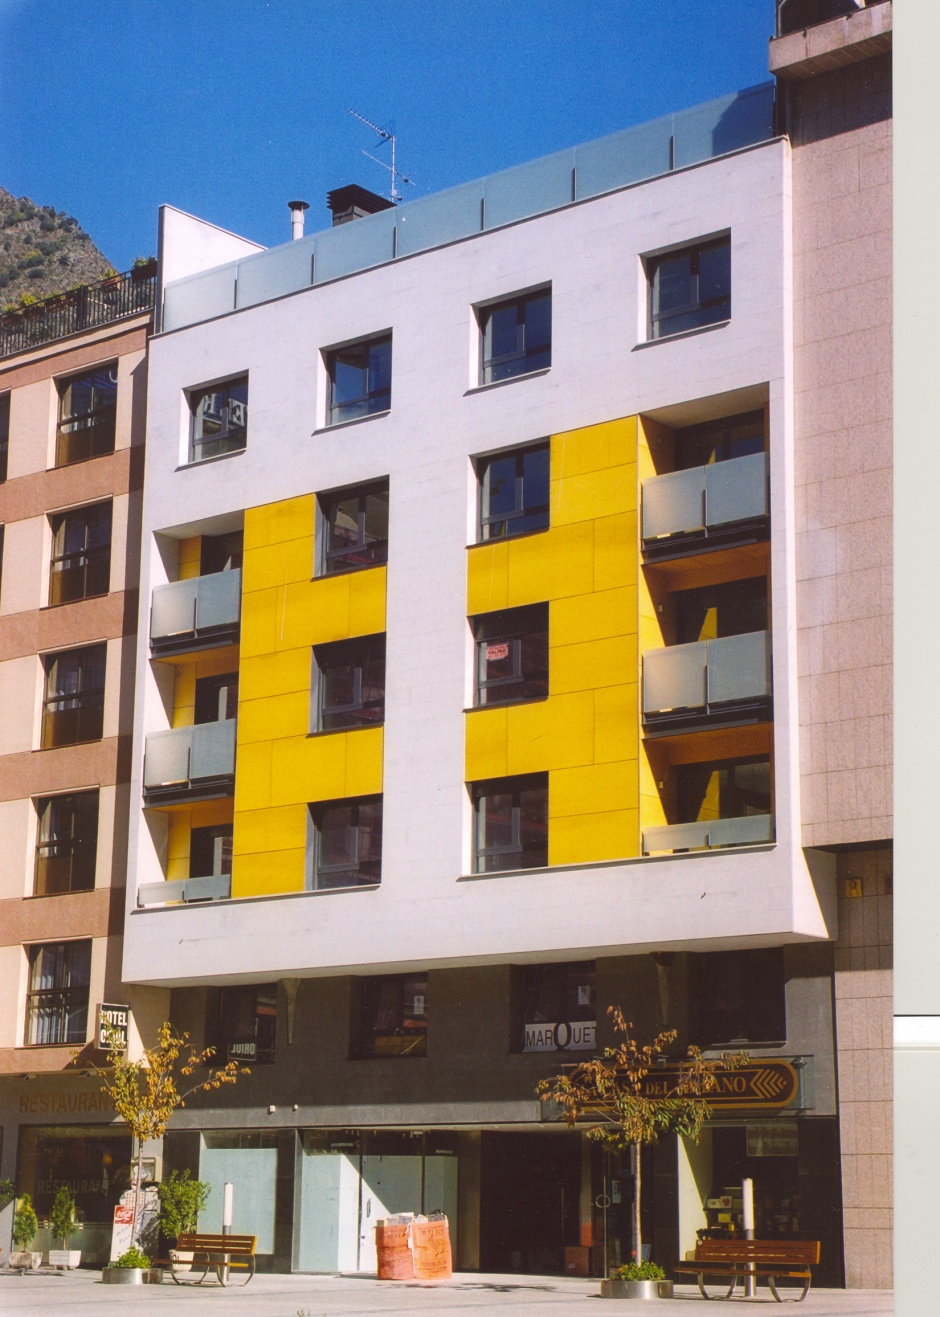 Residential building located at Coprínceps square, 3, Architecture (Principality of Andorra)